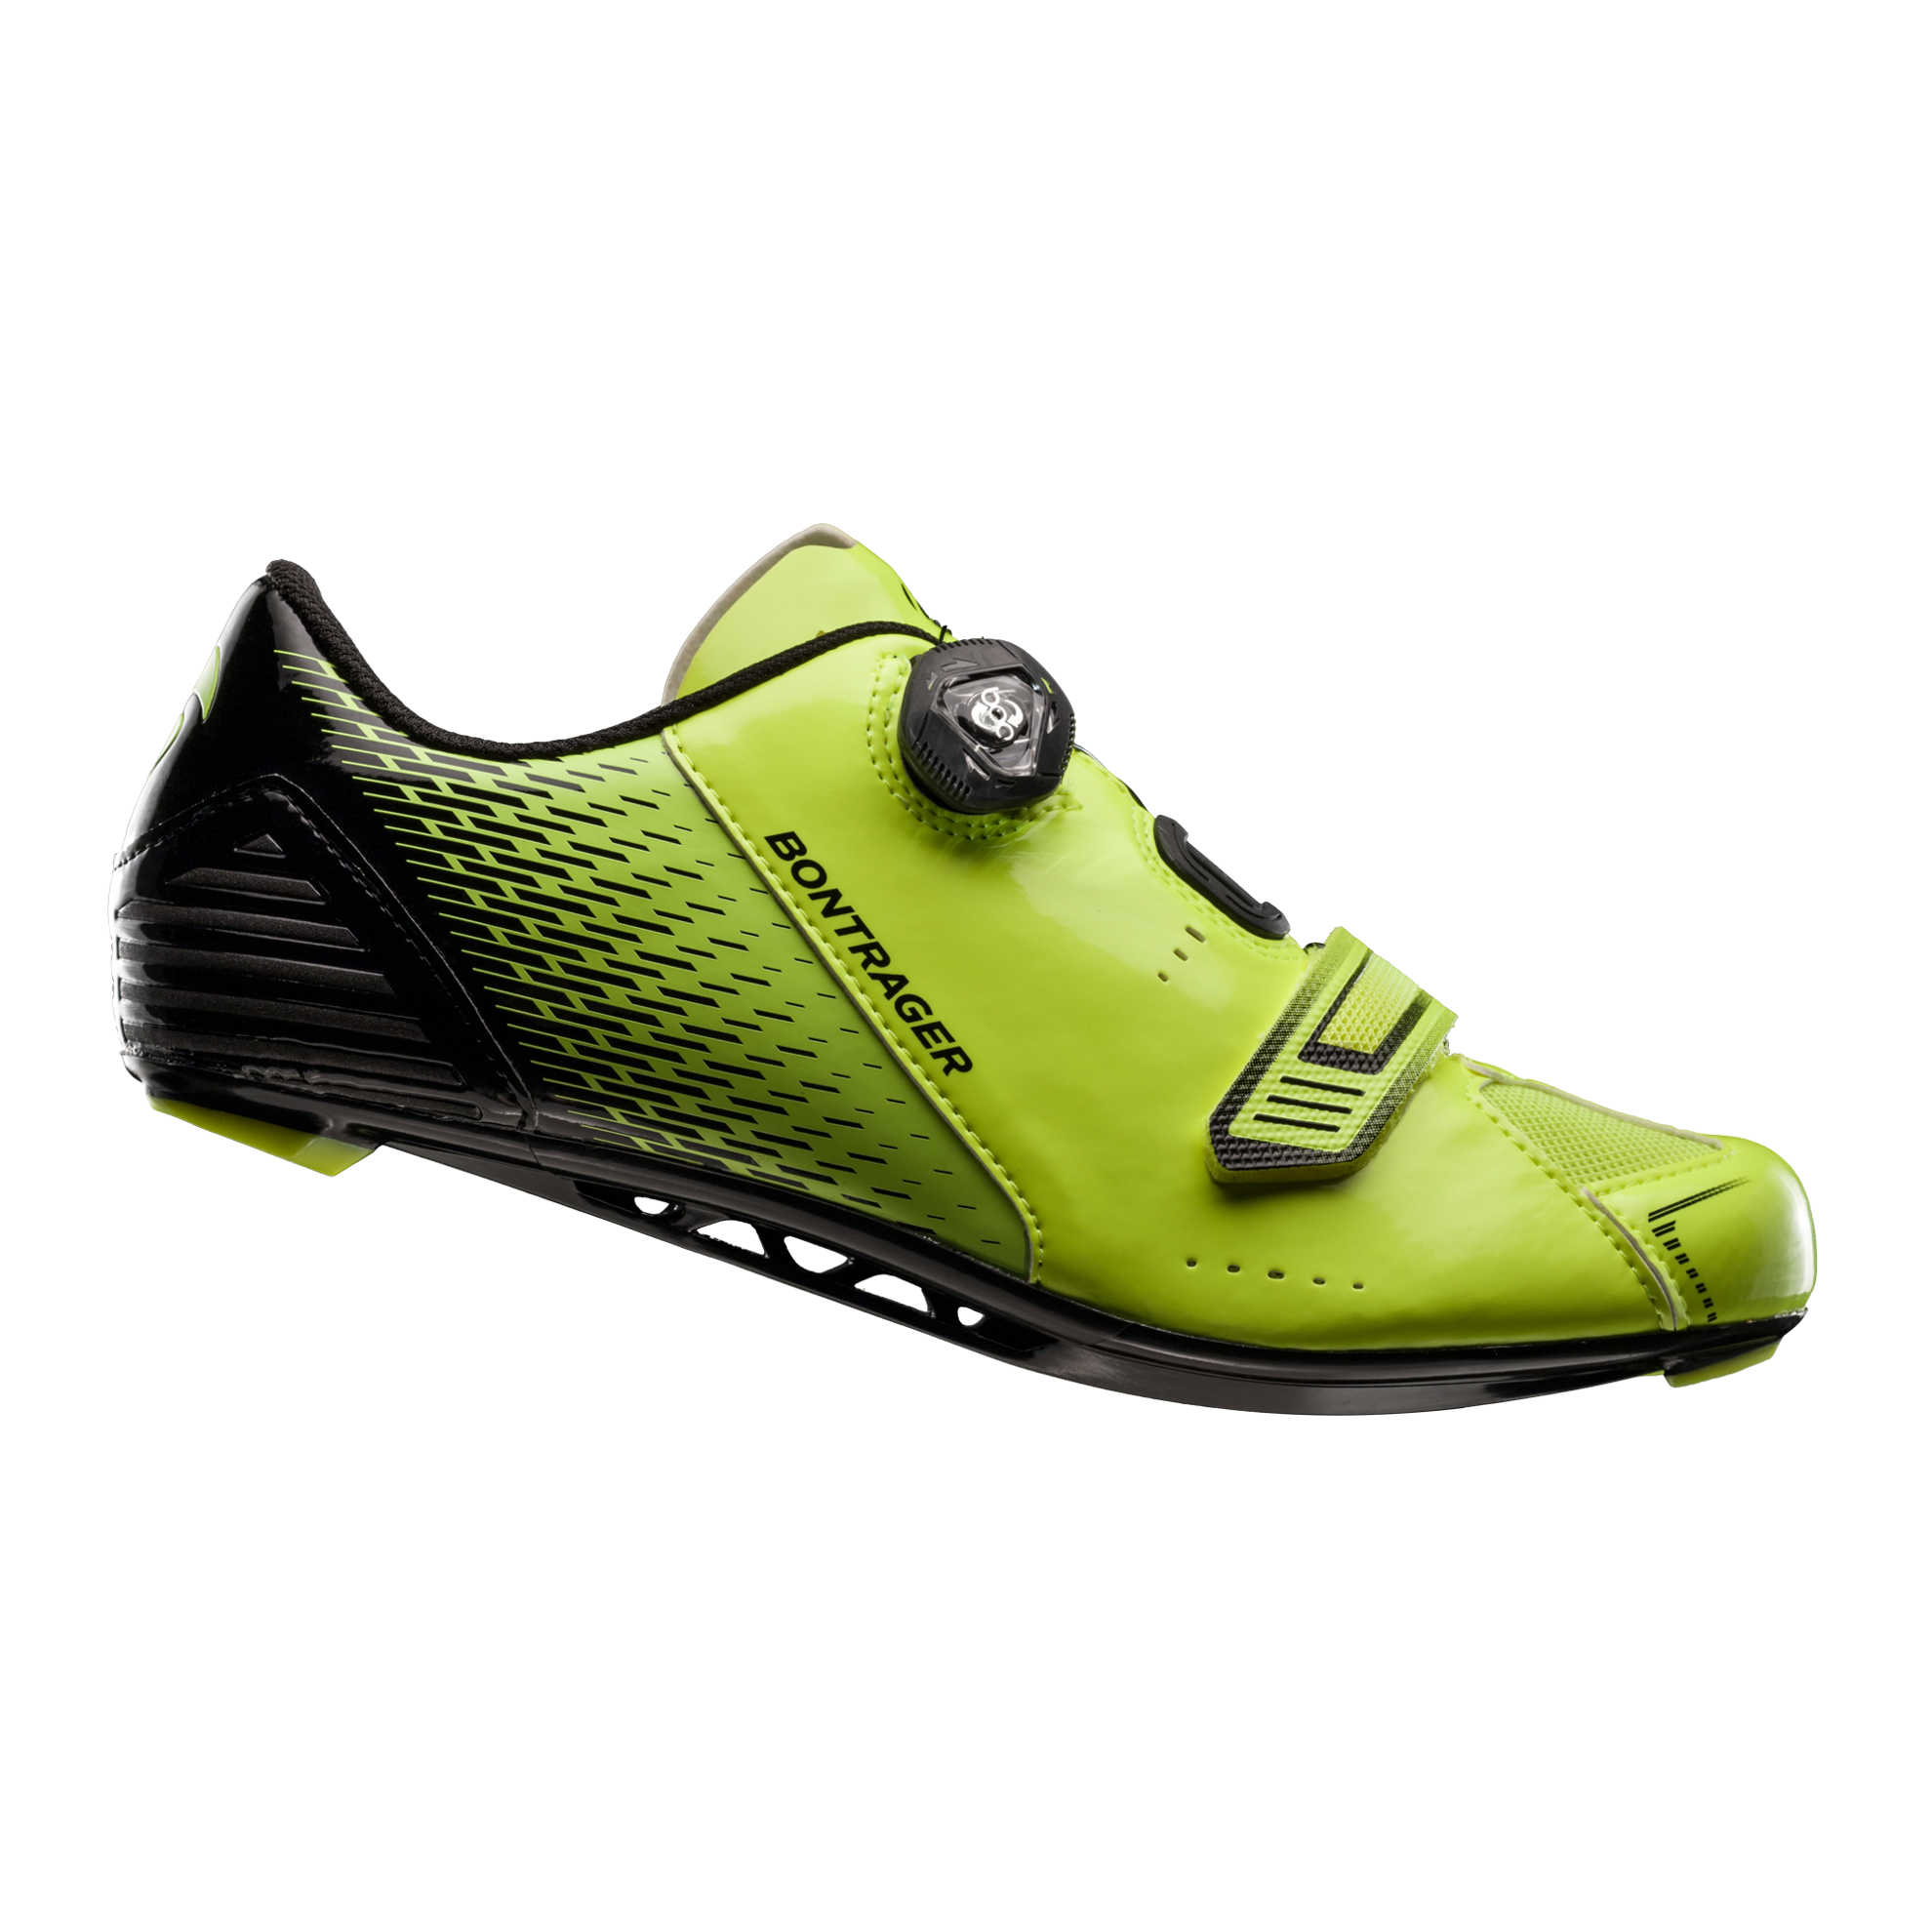 Bontrager Specter Shoe : Visibility Yellow/Black